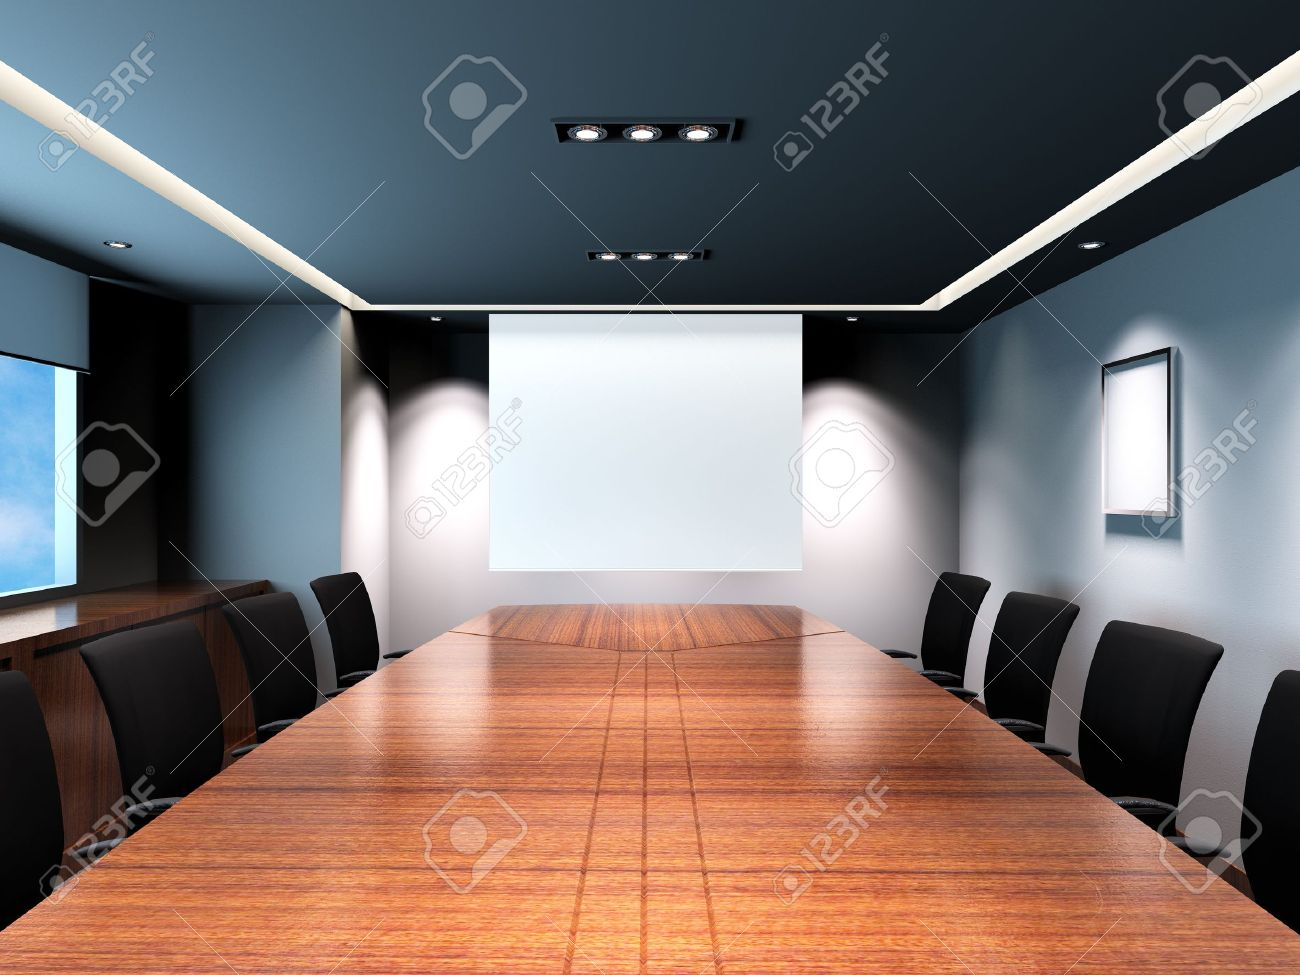 office meeting room. office meeting room stock photo 15750910 i